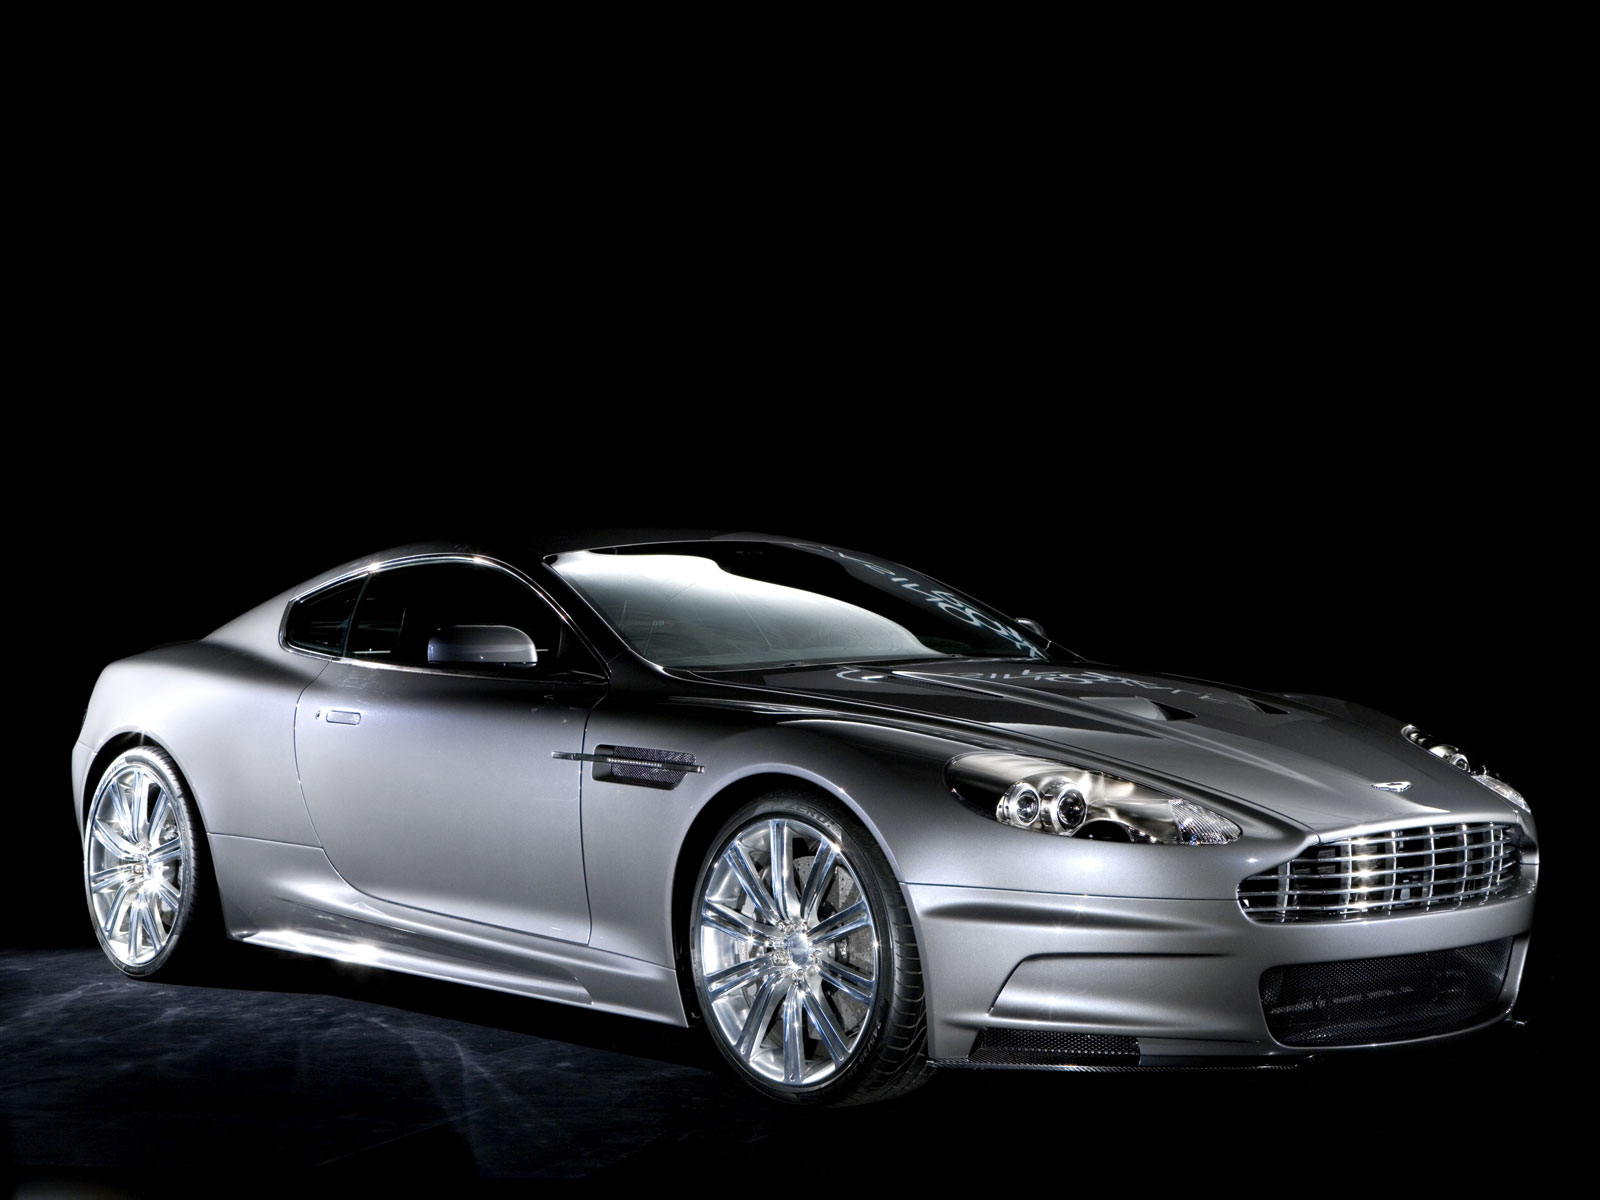 aston martin wallpaper (Aston Martin DBS)